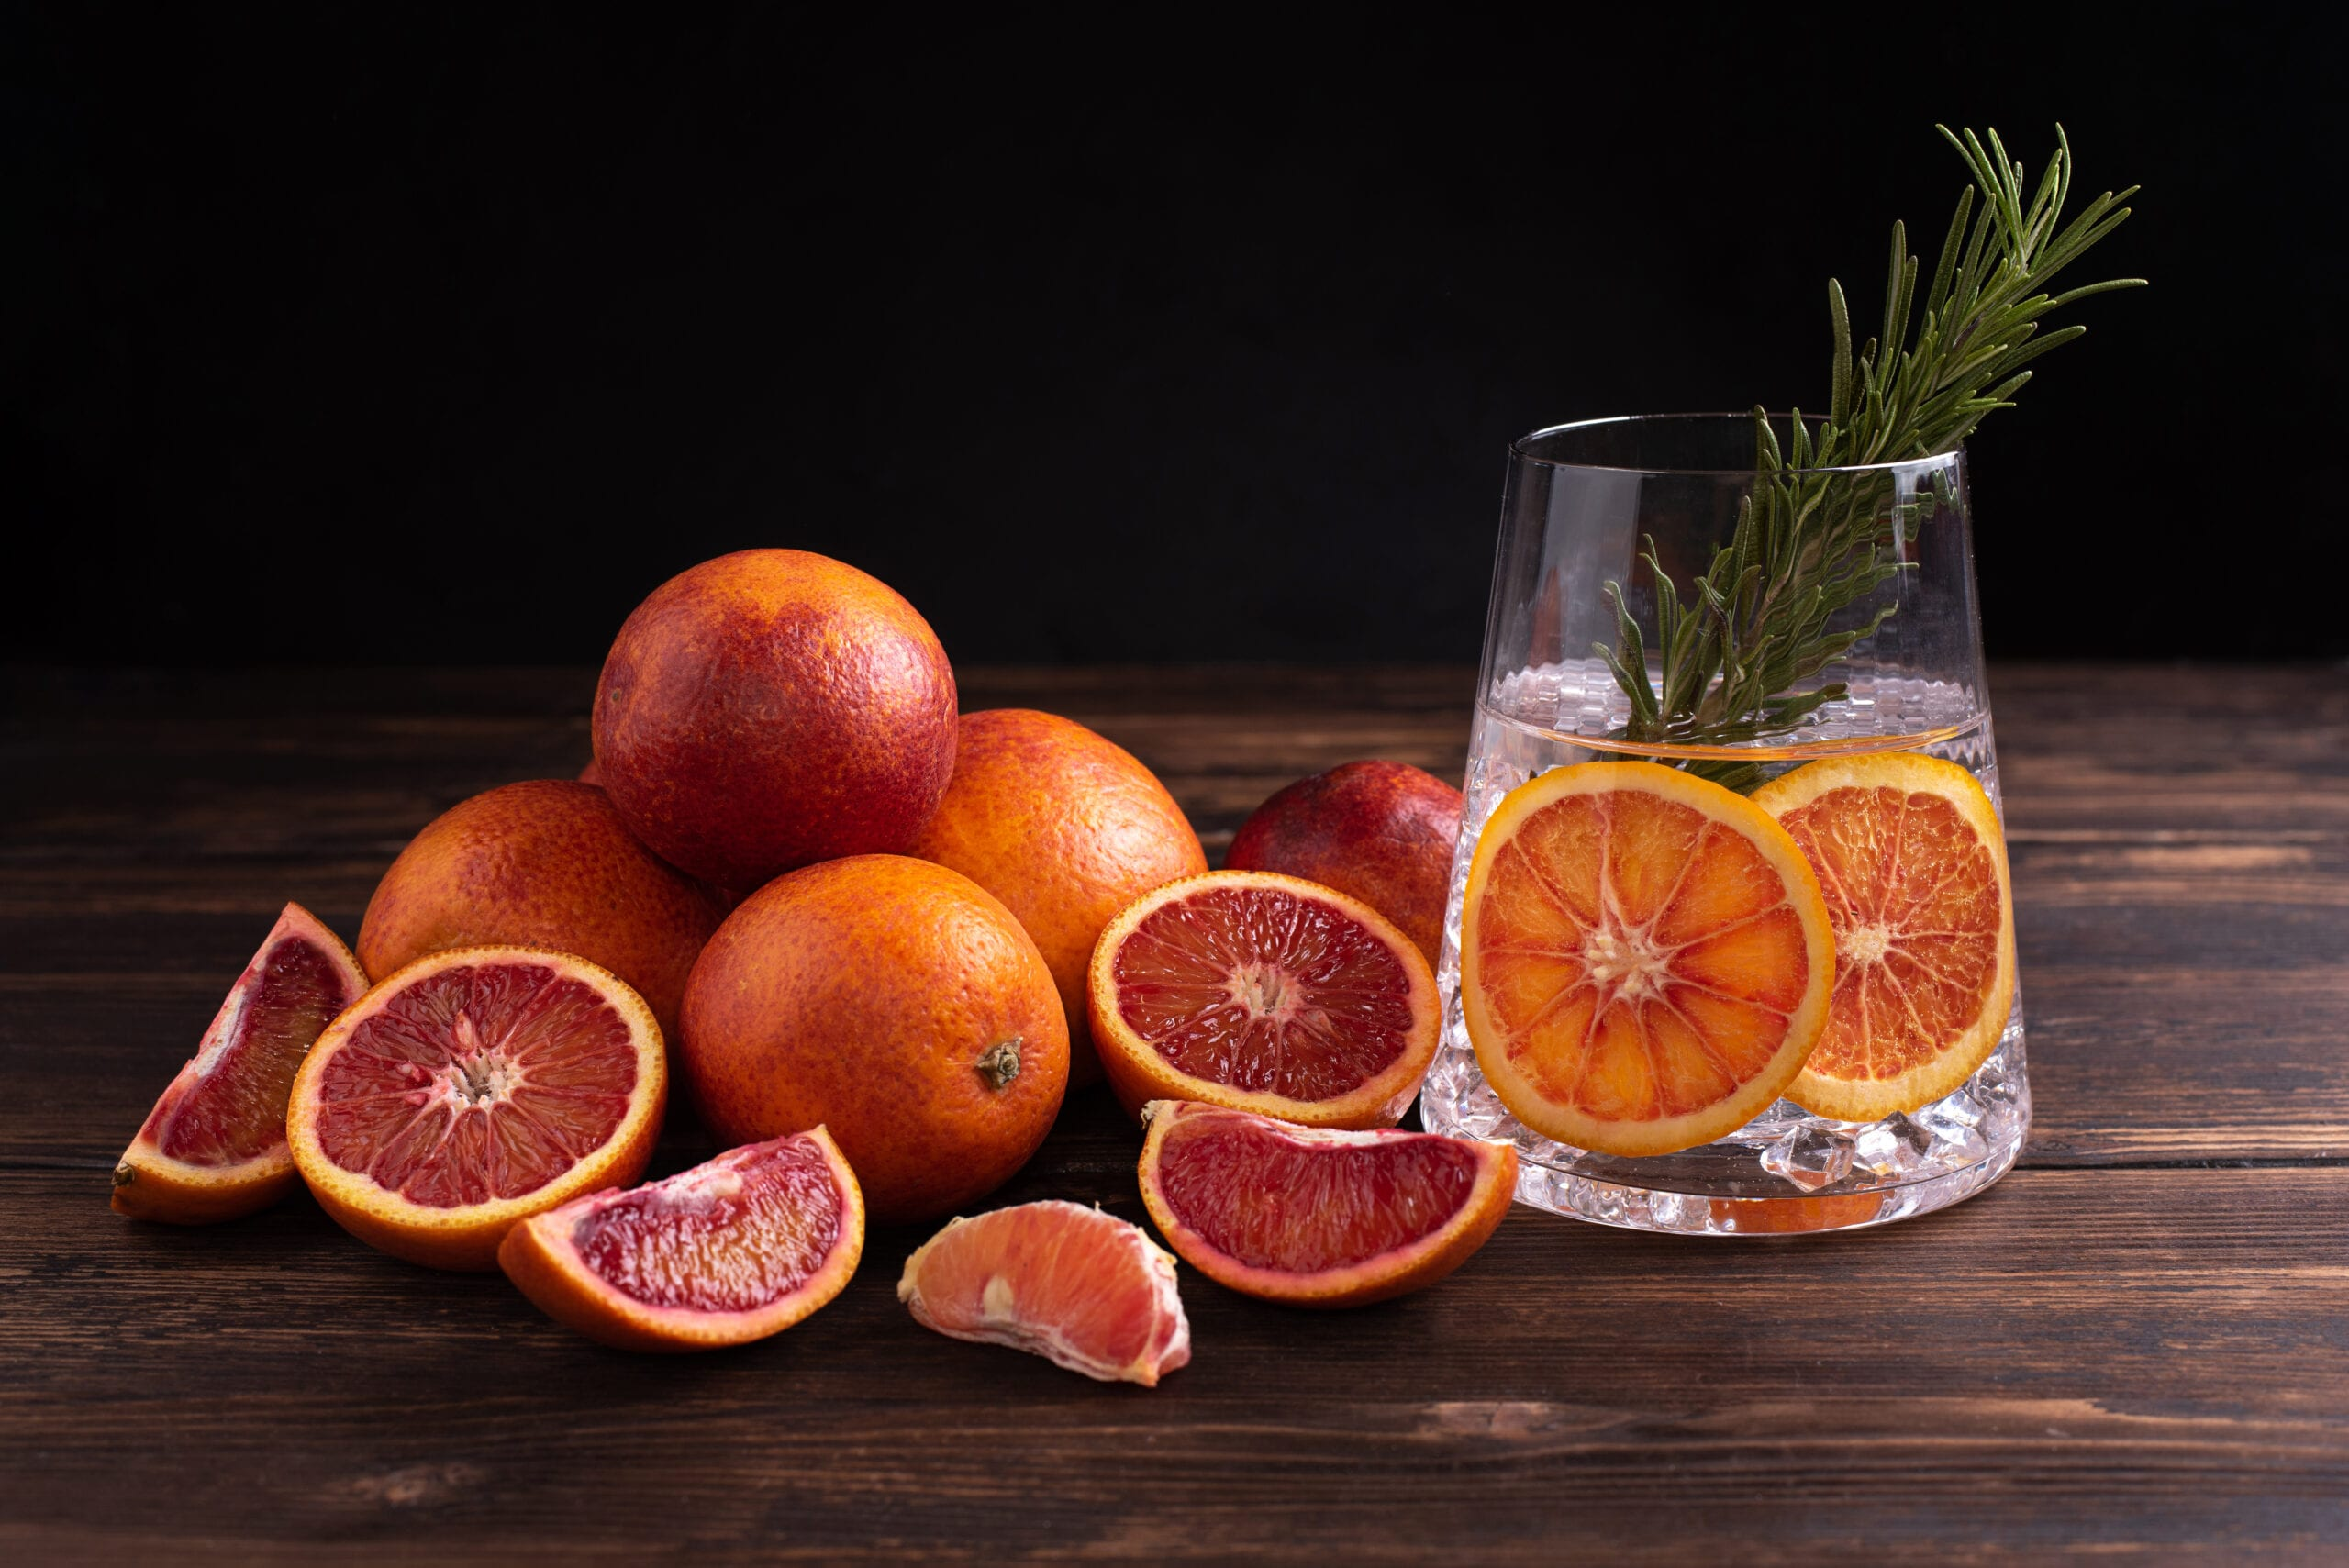 Blood Orange and Rosemary Gin presented in a glass tumbler. Blood orange fruits have been laid out on the table.